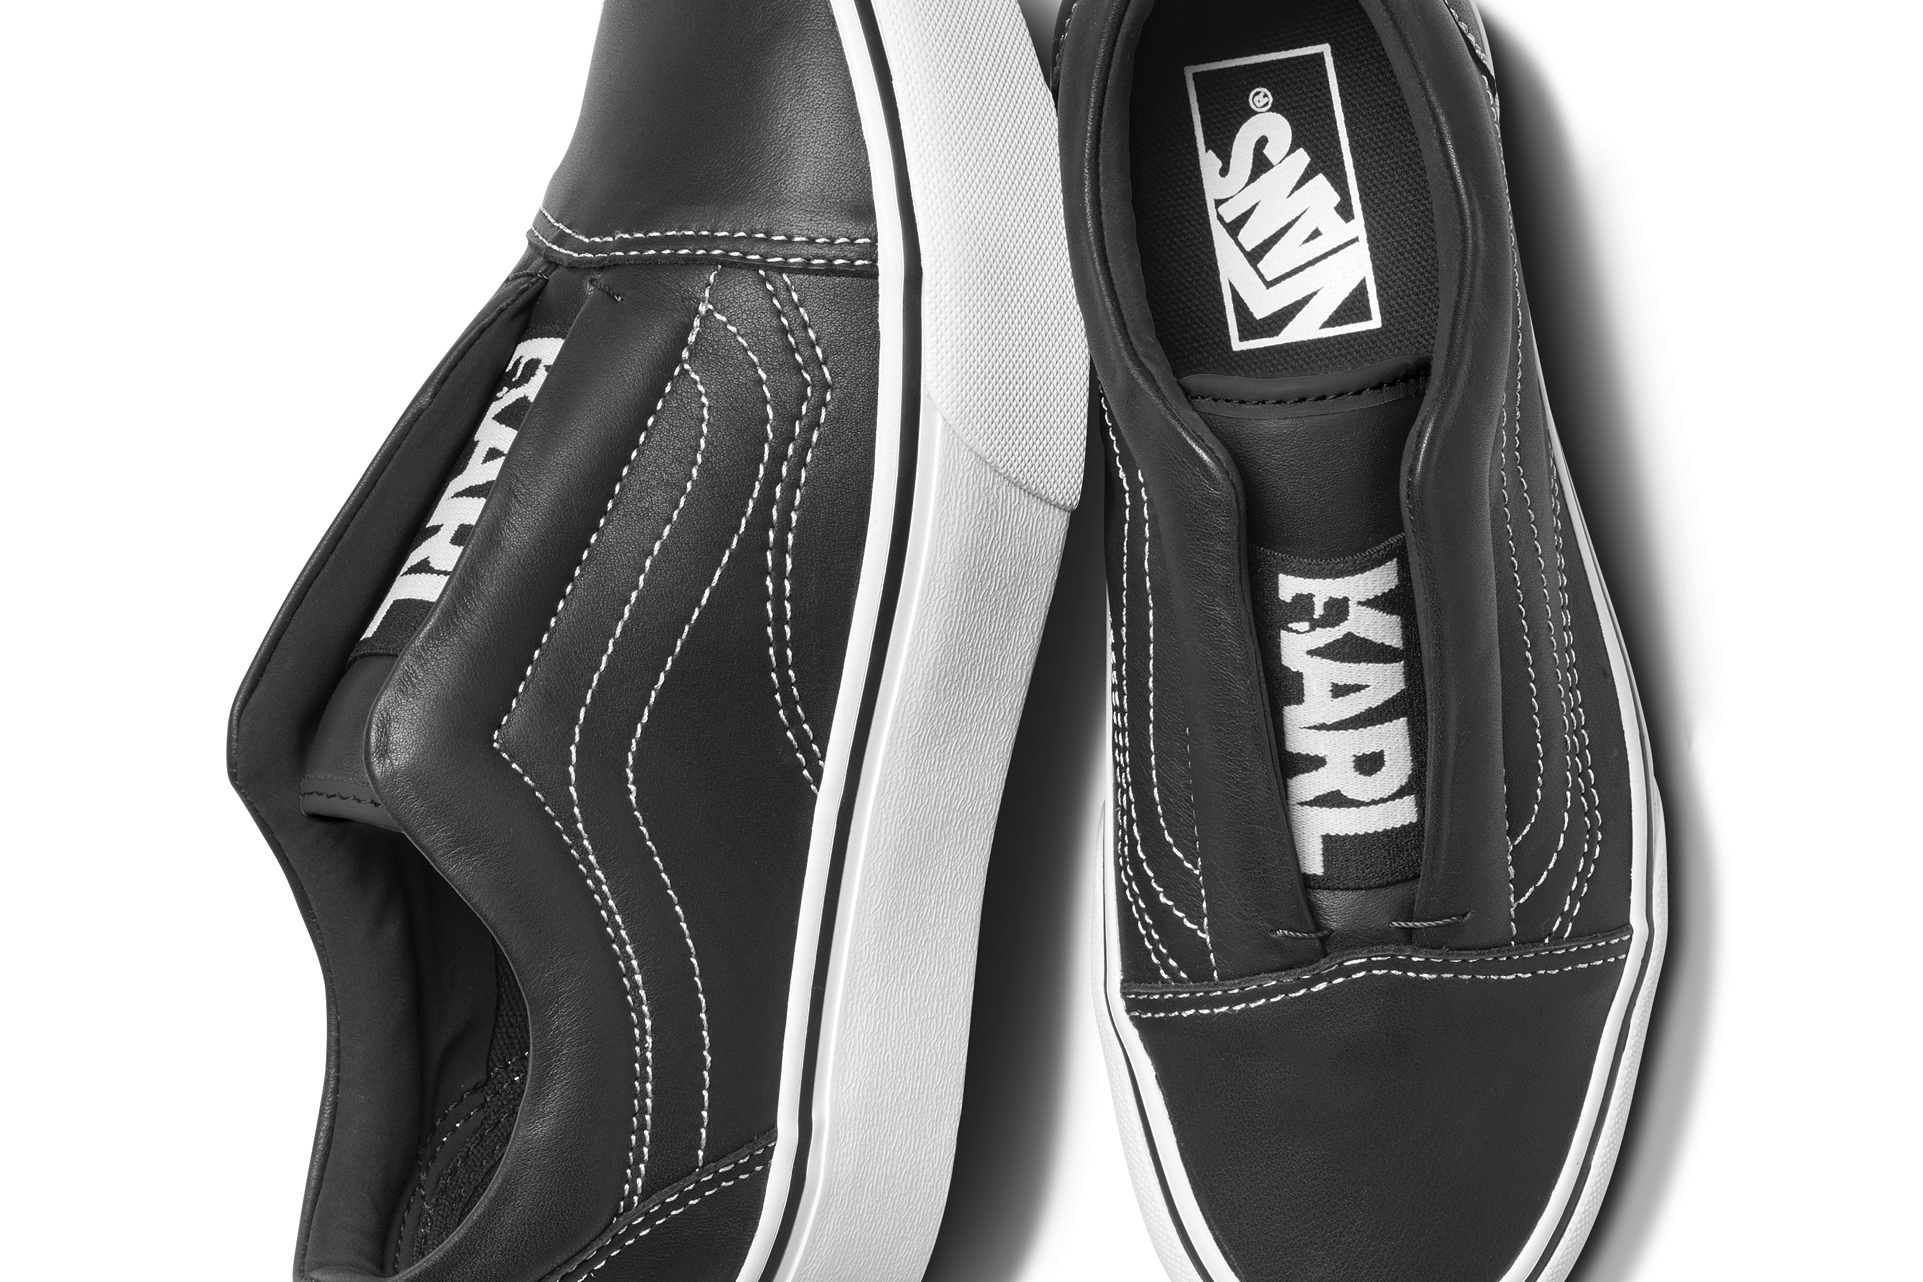 4a64a039522 Vans x Karl Lagerfeld Women s Collection - size  blog